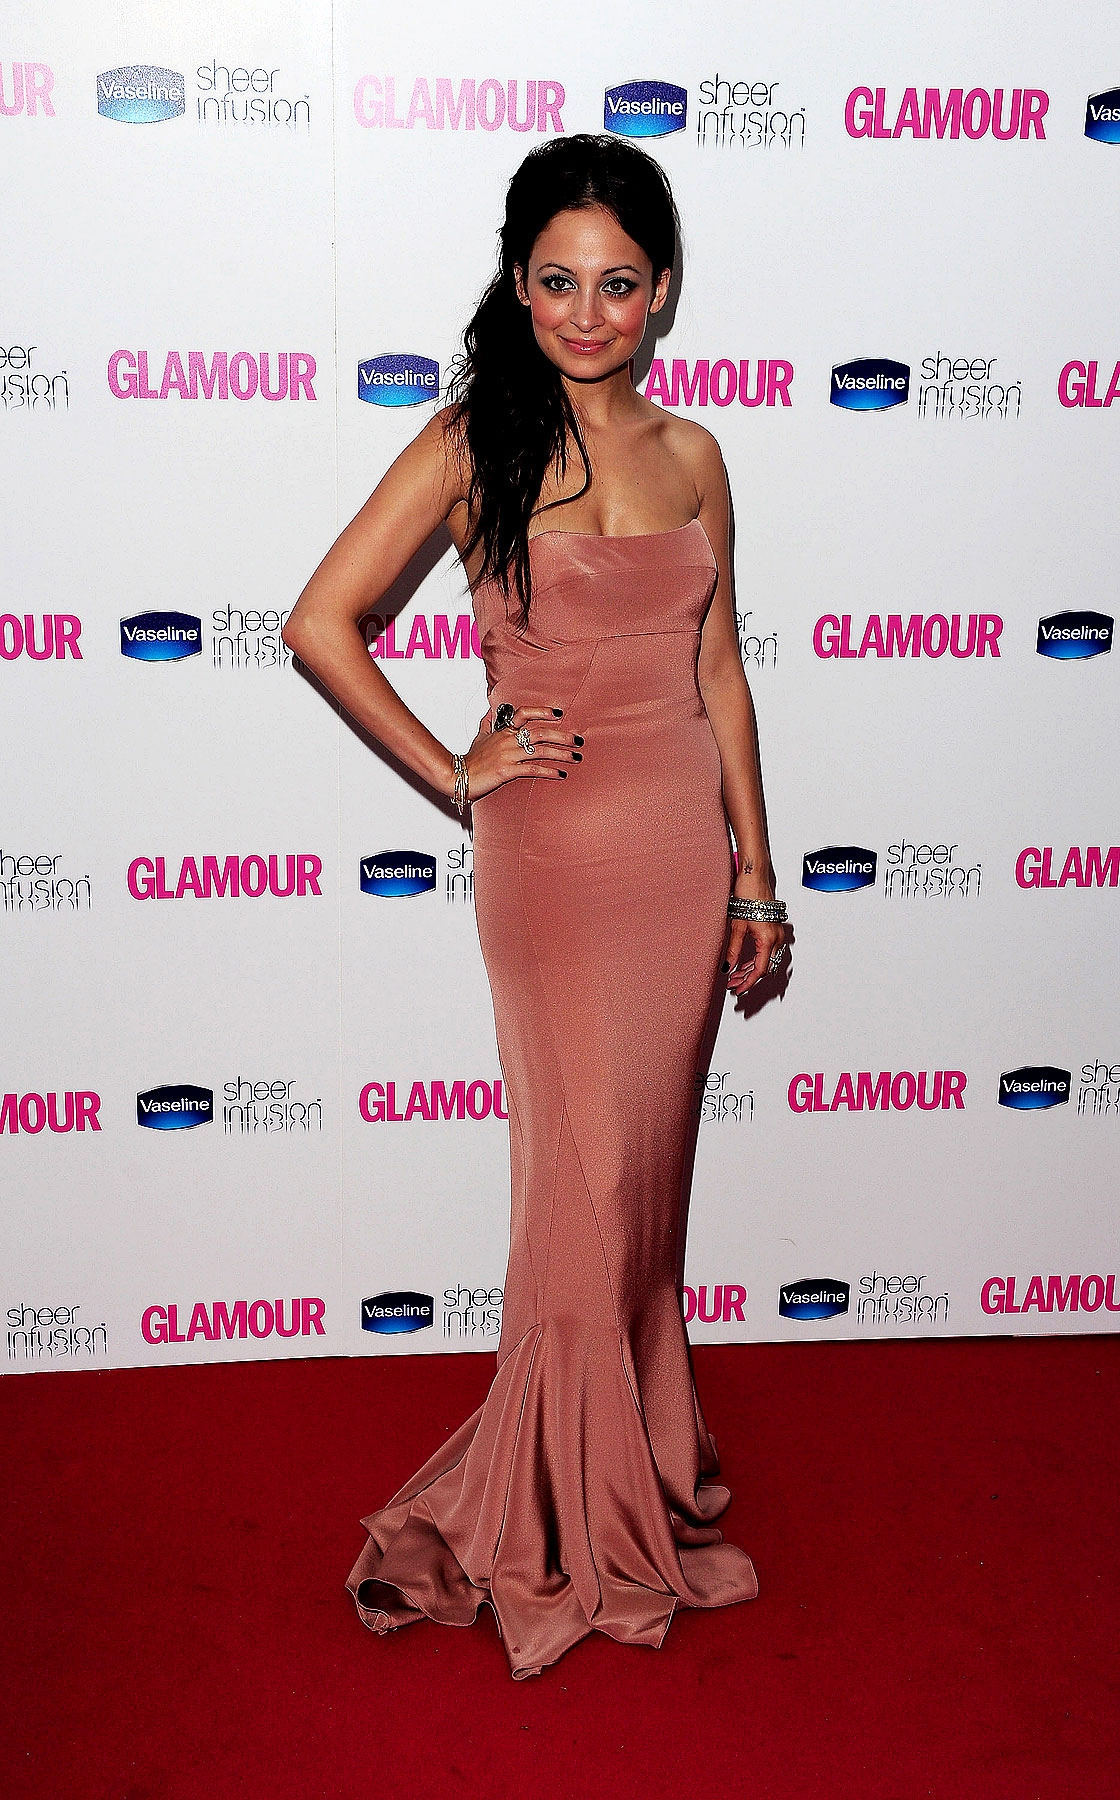 Fashion FAILs & FTWs Of The Glamour Women of the Year Awards (PHOTOS)